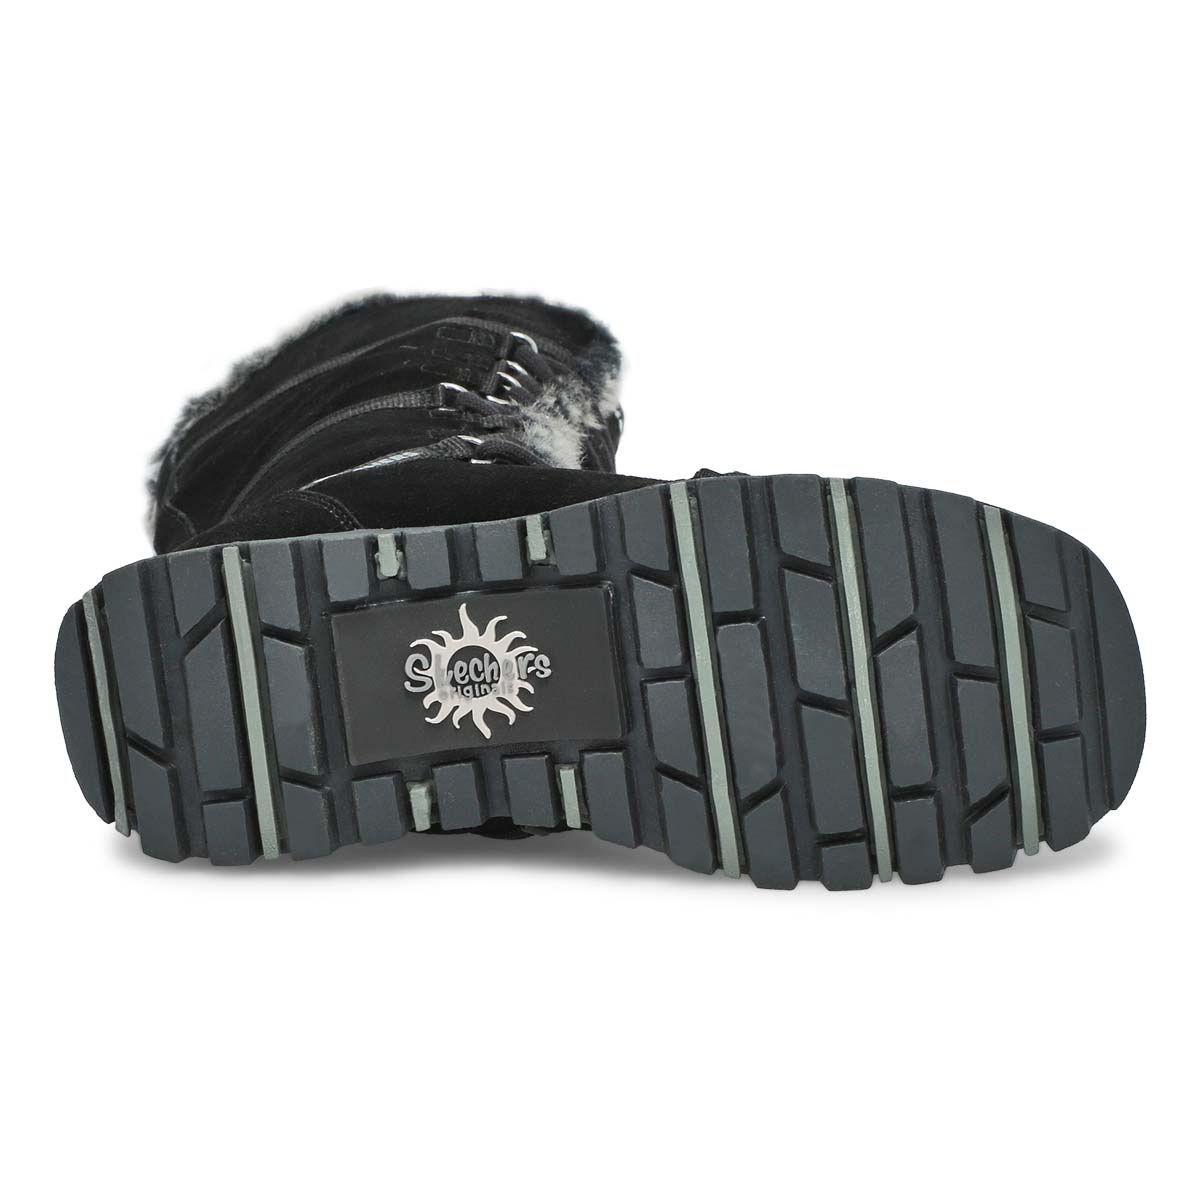 Lds Grand Jams Unlimited blk tall boot